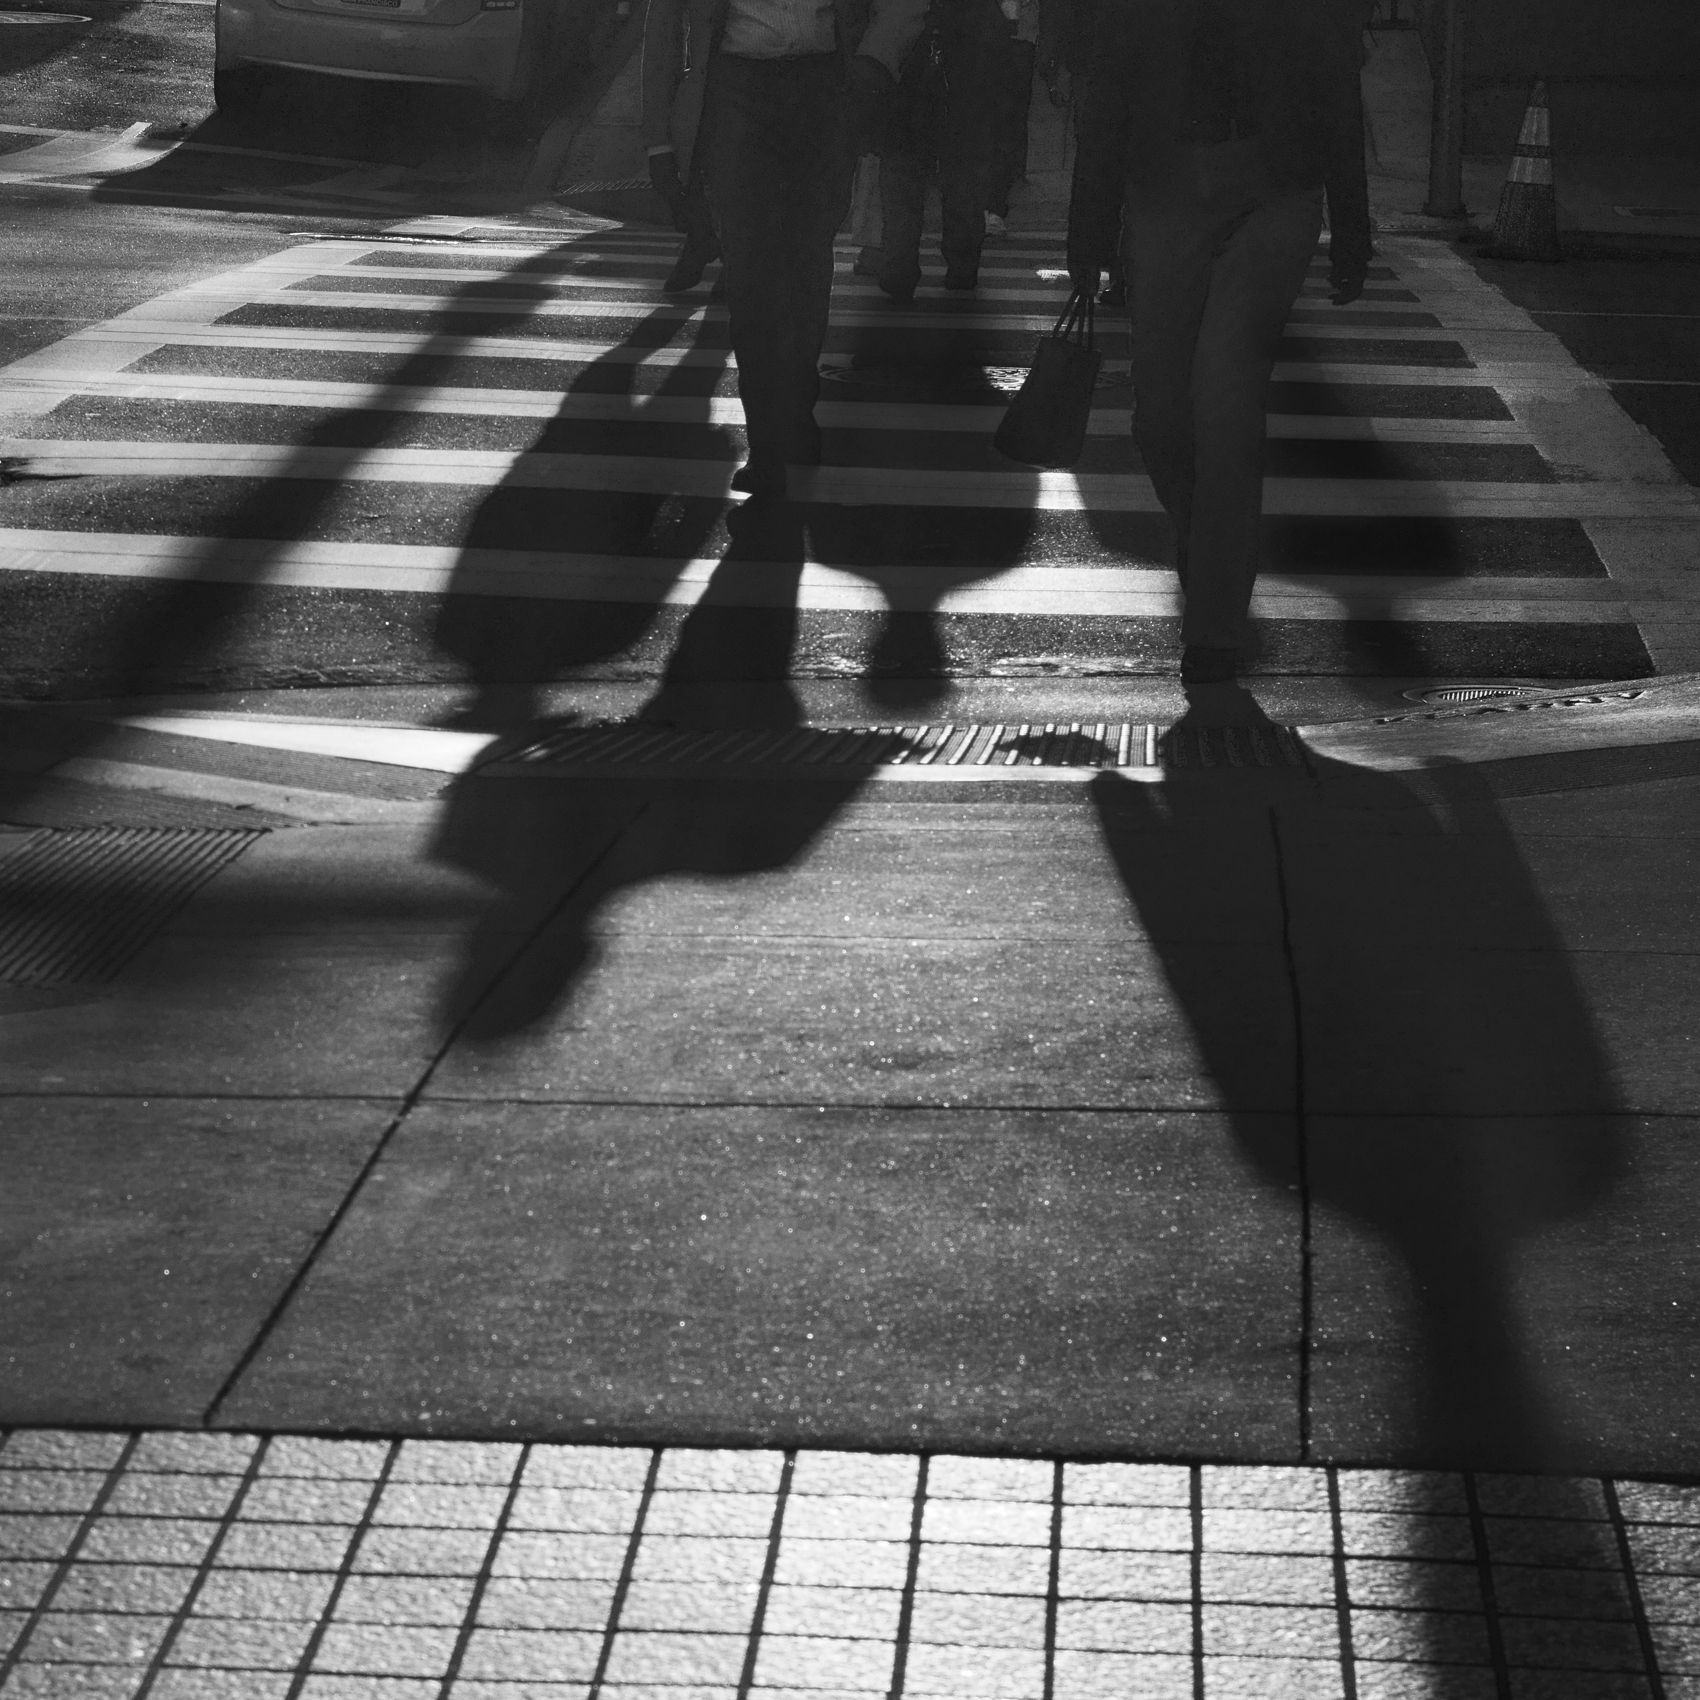 Shadows in Square